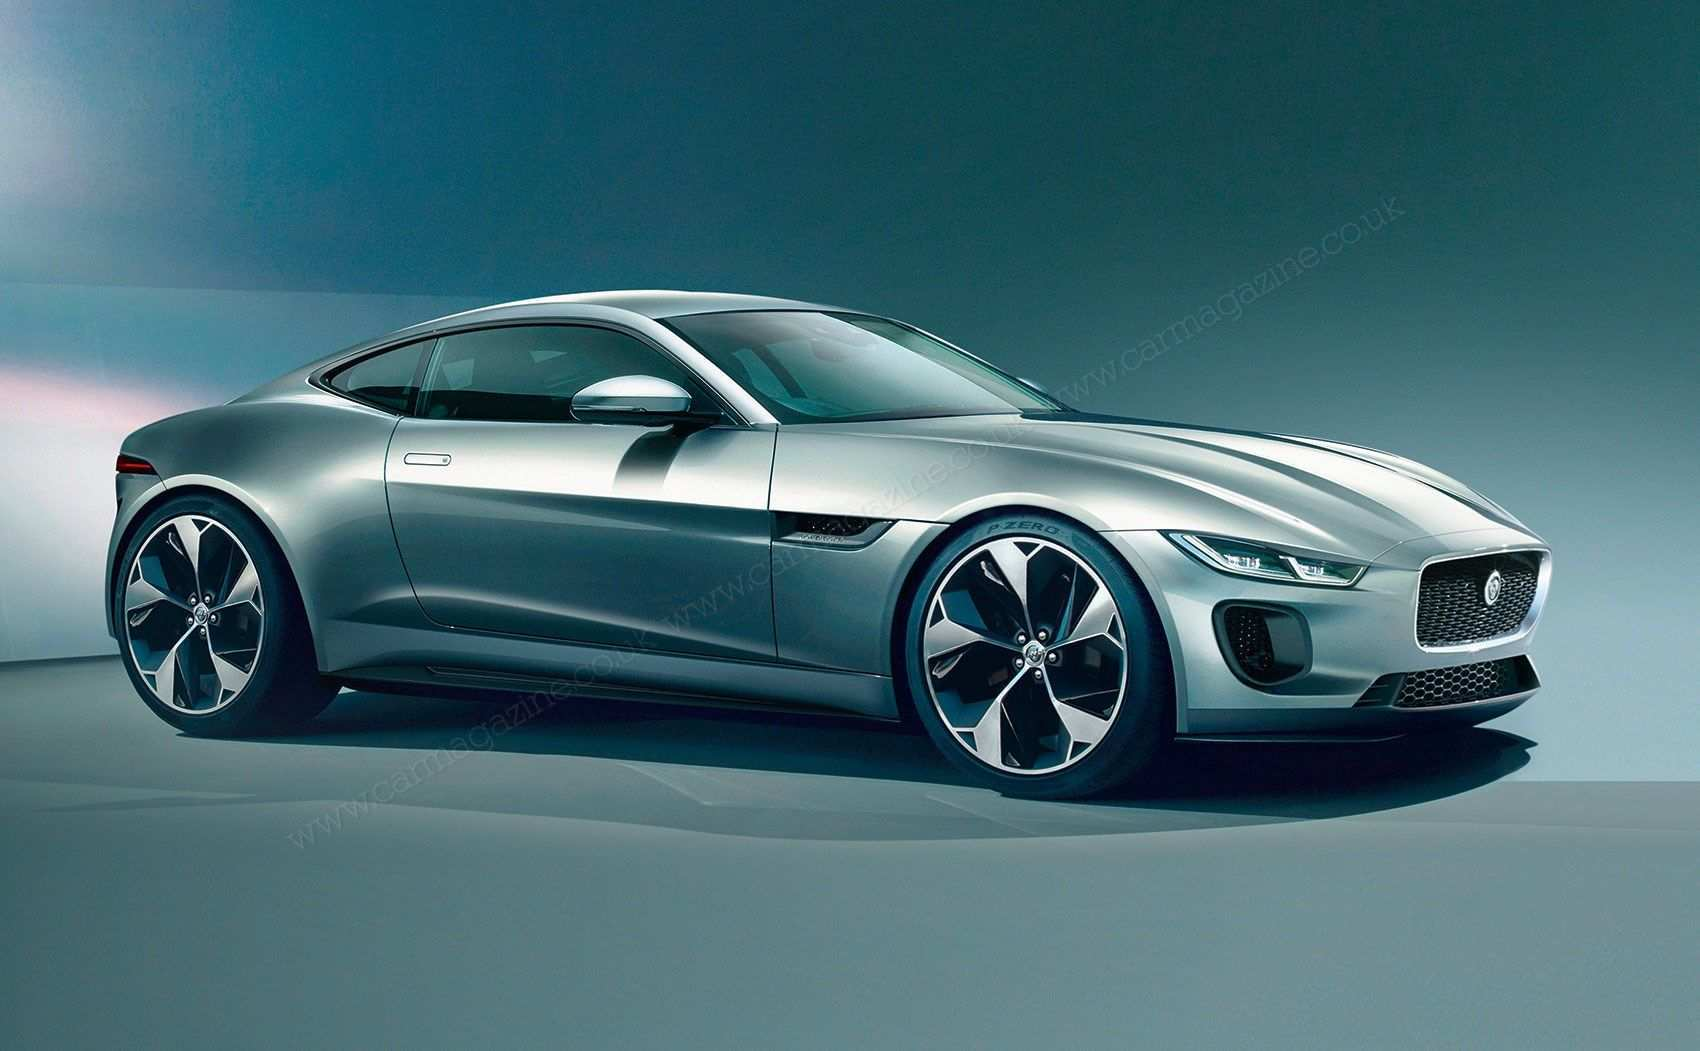 62 A Jaguar Concept 2020 Redesign And Concept